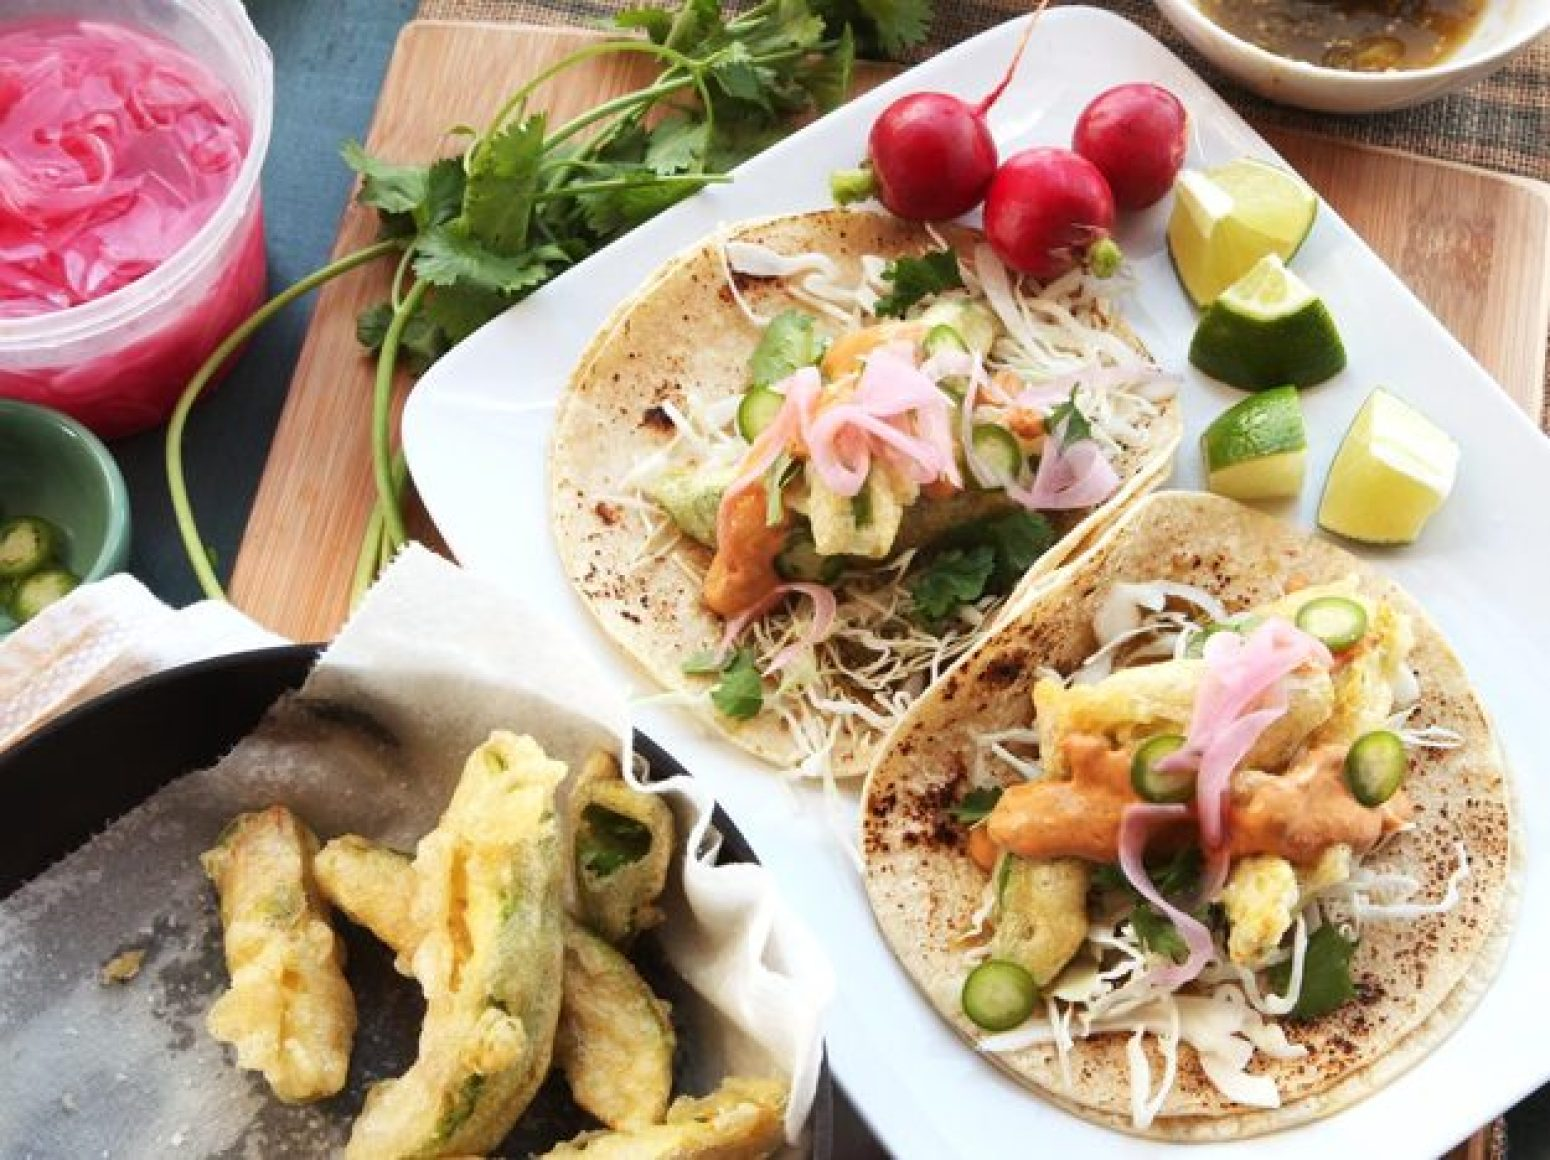 Avocado Tacos With Chipotle Cream, Cabbage, and Pickled Red Onions ...